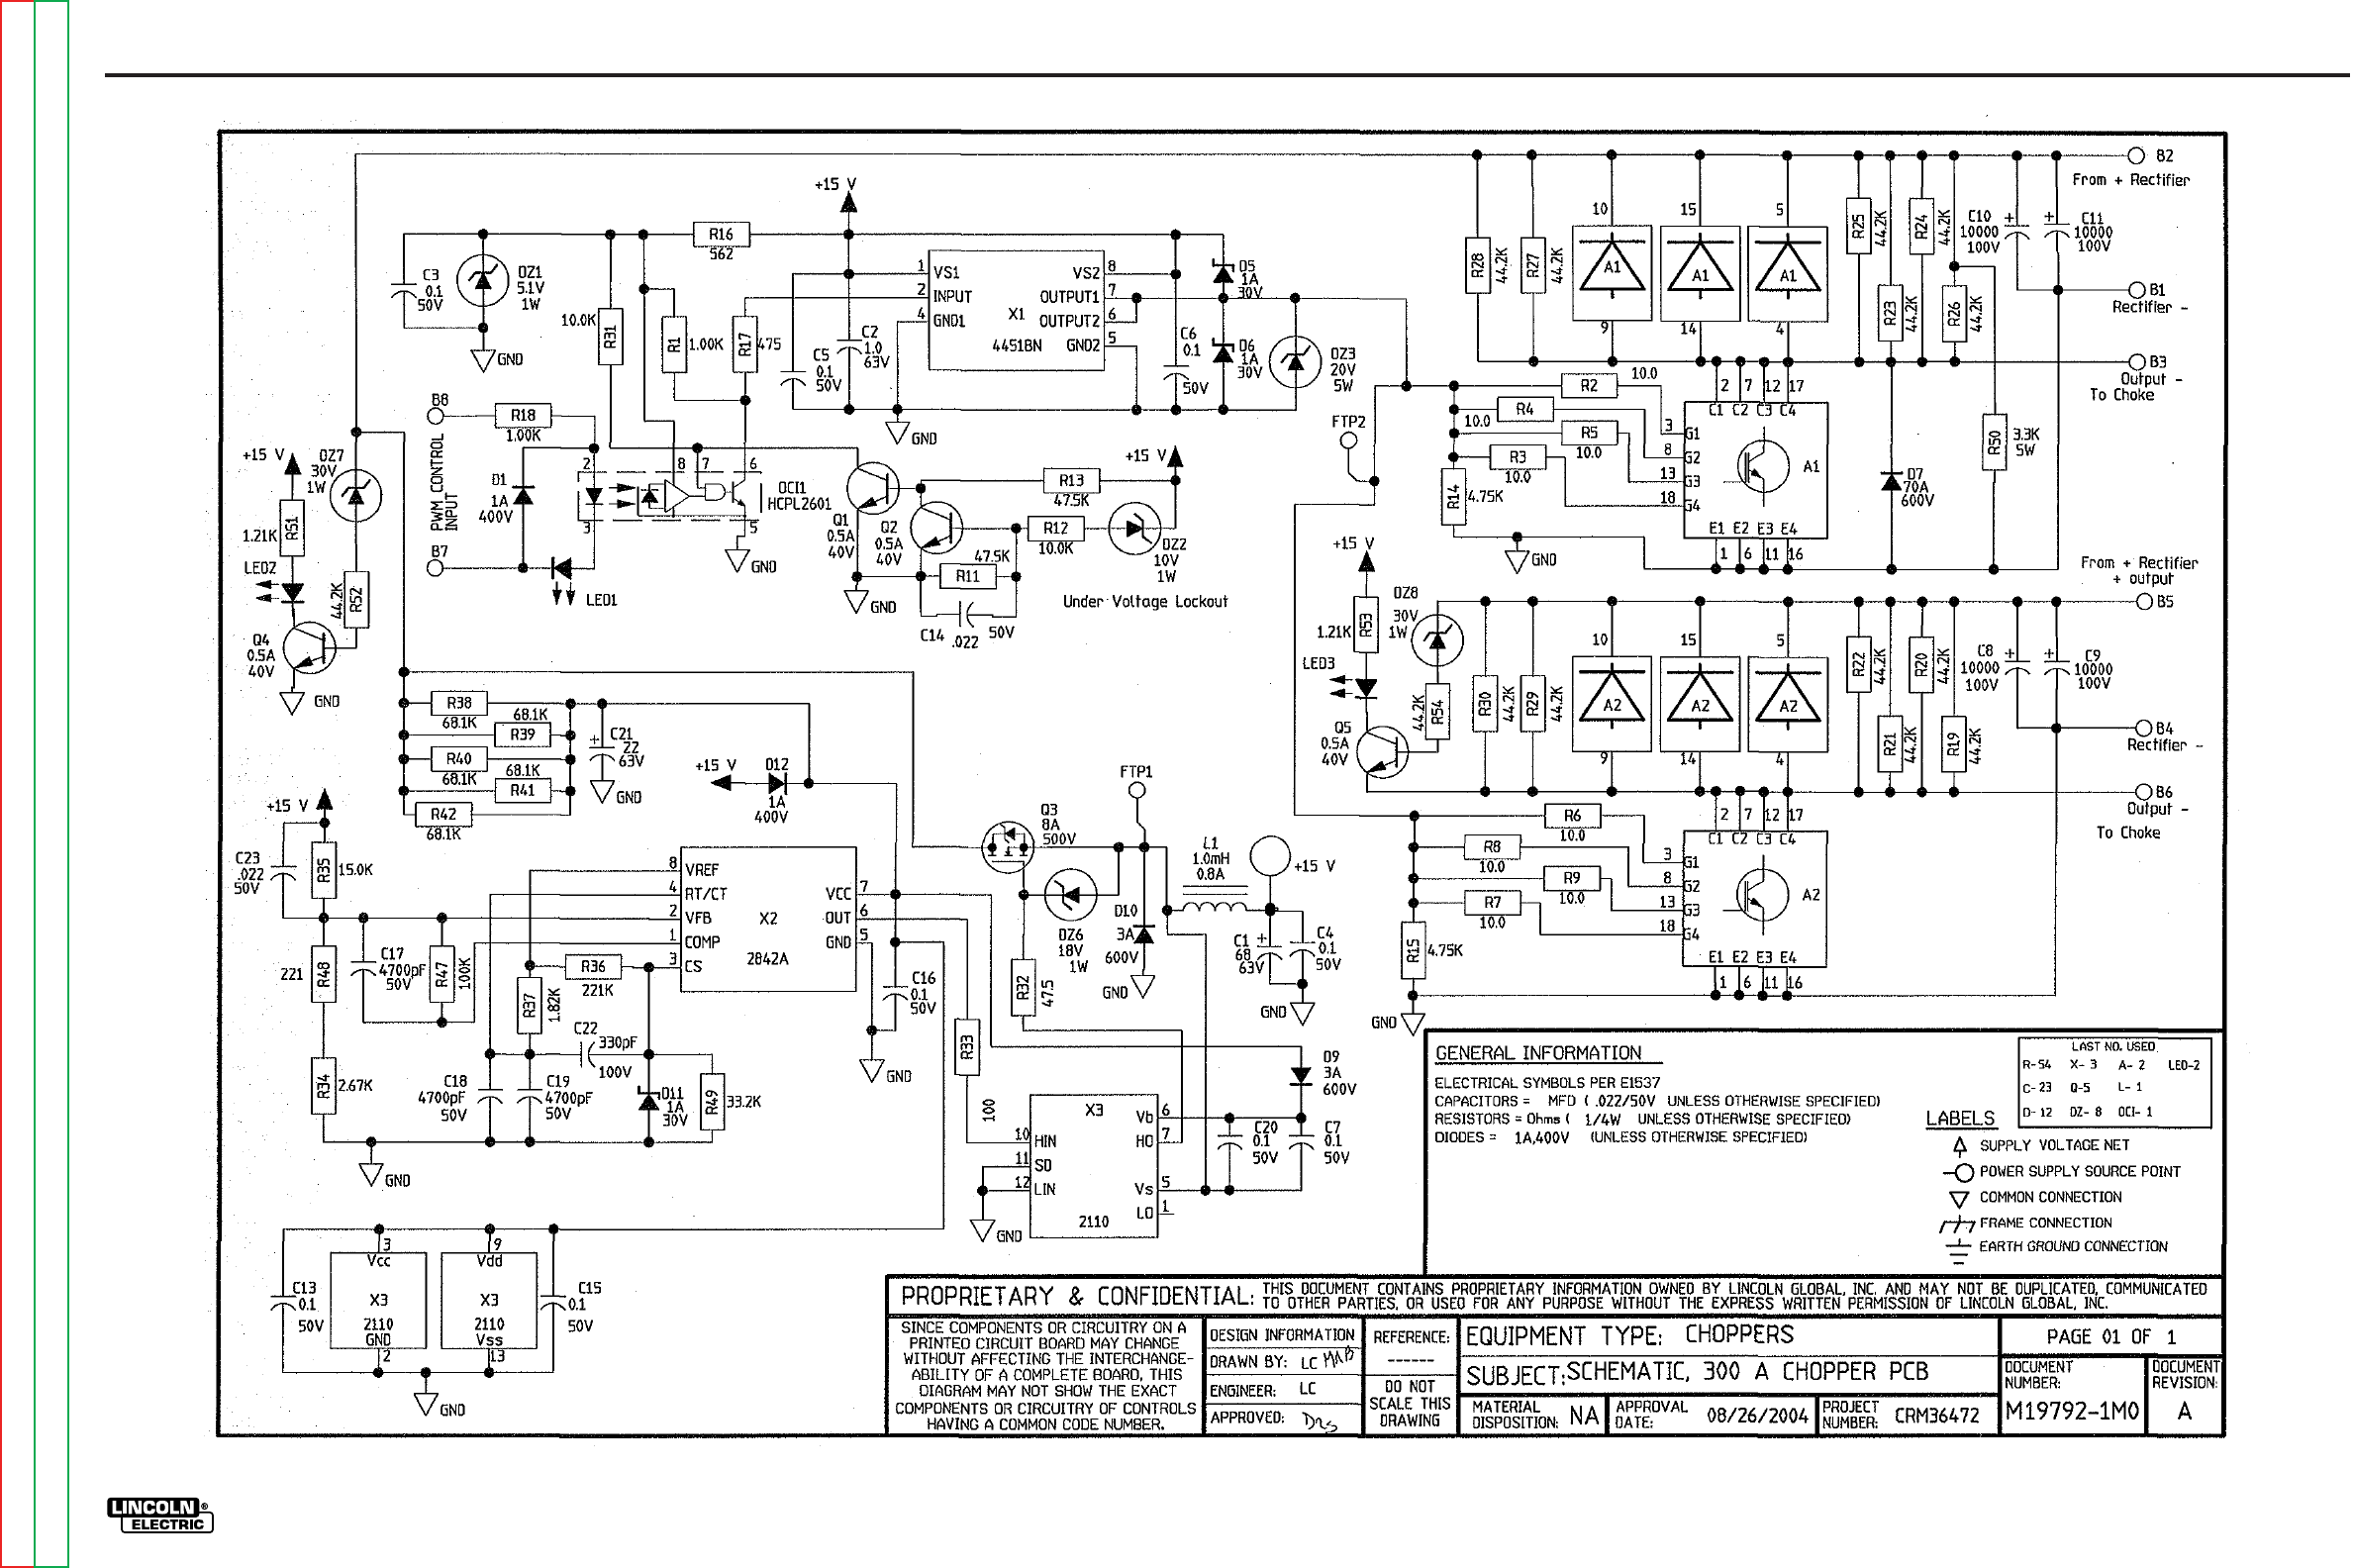 4120fa81 f002 437a 8450 adc1b65838a4 bgc1 page 193 of lincoln electric welder svm175 a user guide chicago electric arc welder 140 wiring diagram at bakdesigns.co